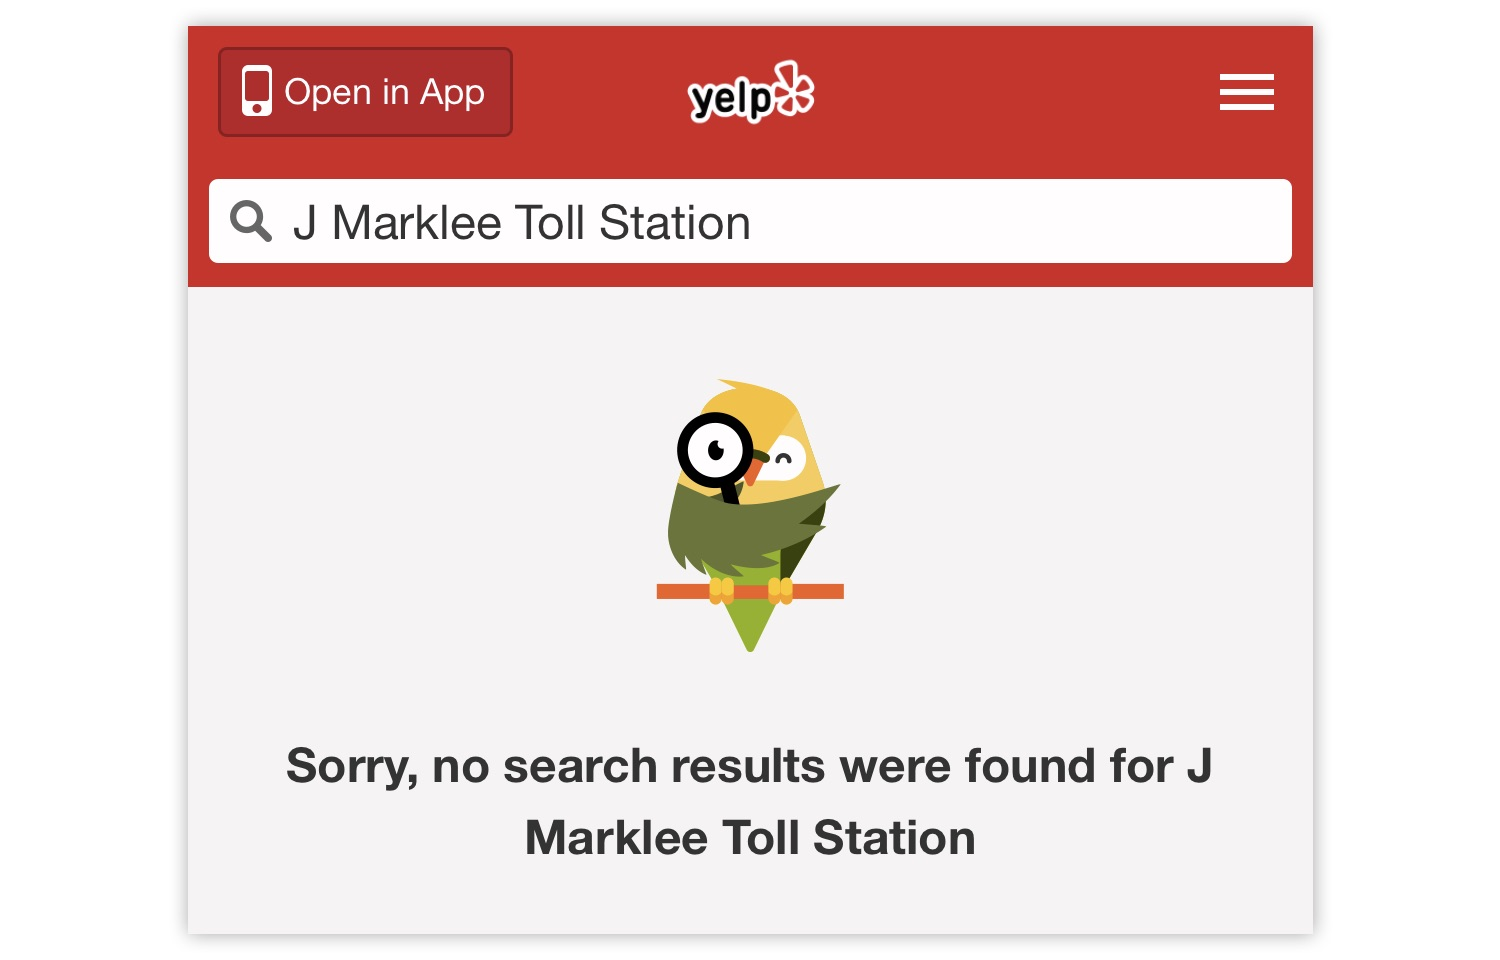 2-16 Markleeville Yelp Listing Missing.jpg